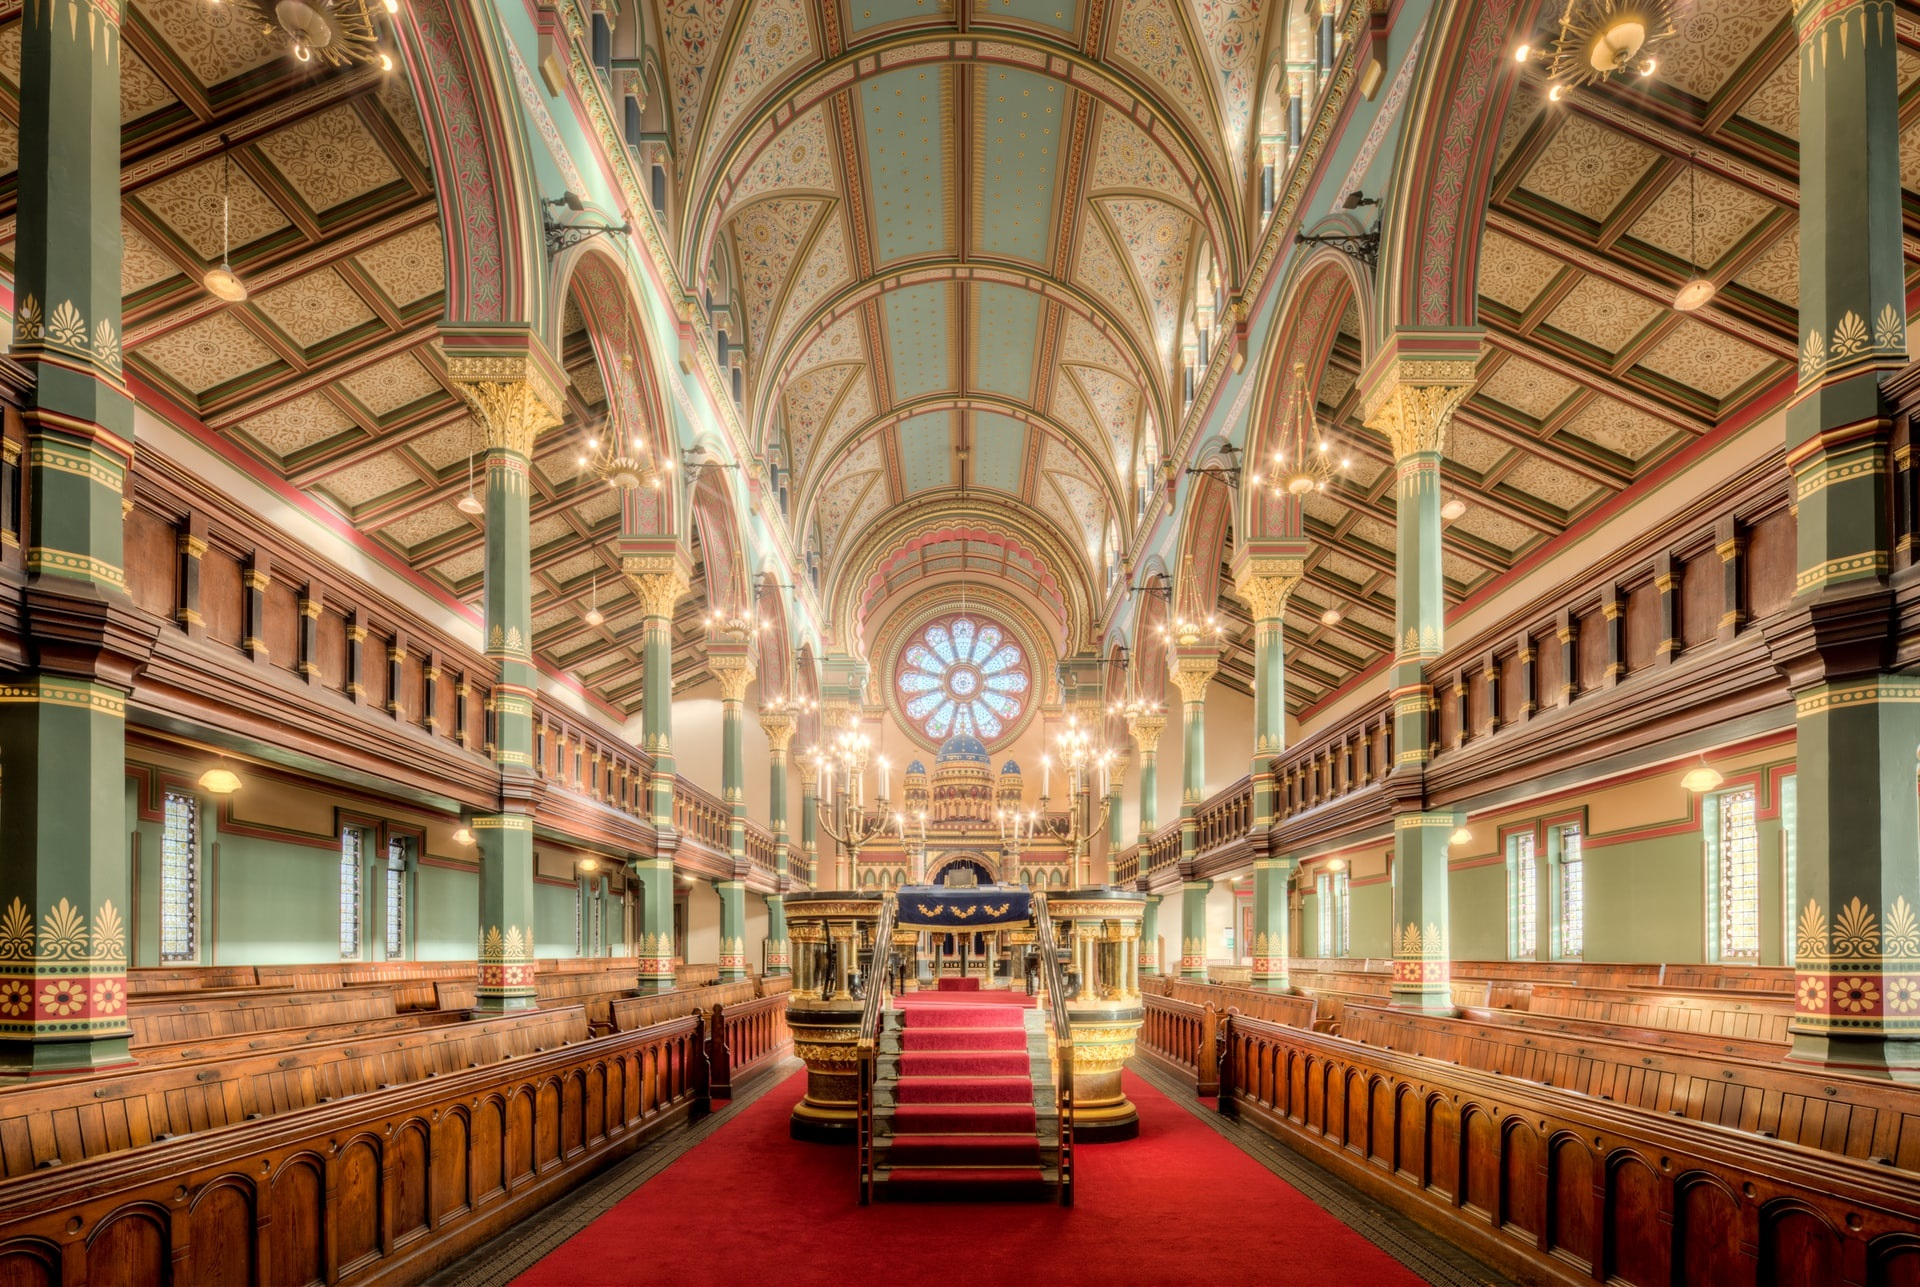 [Photograph taken from inside Princes Road Synagogue. Located in Liverpool, Merseyside, England.]